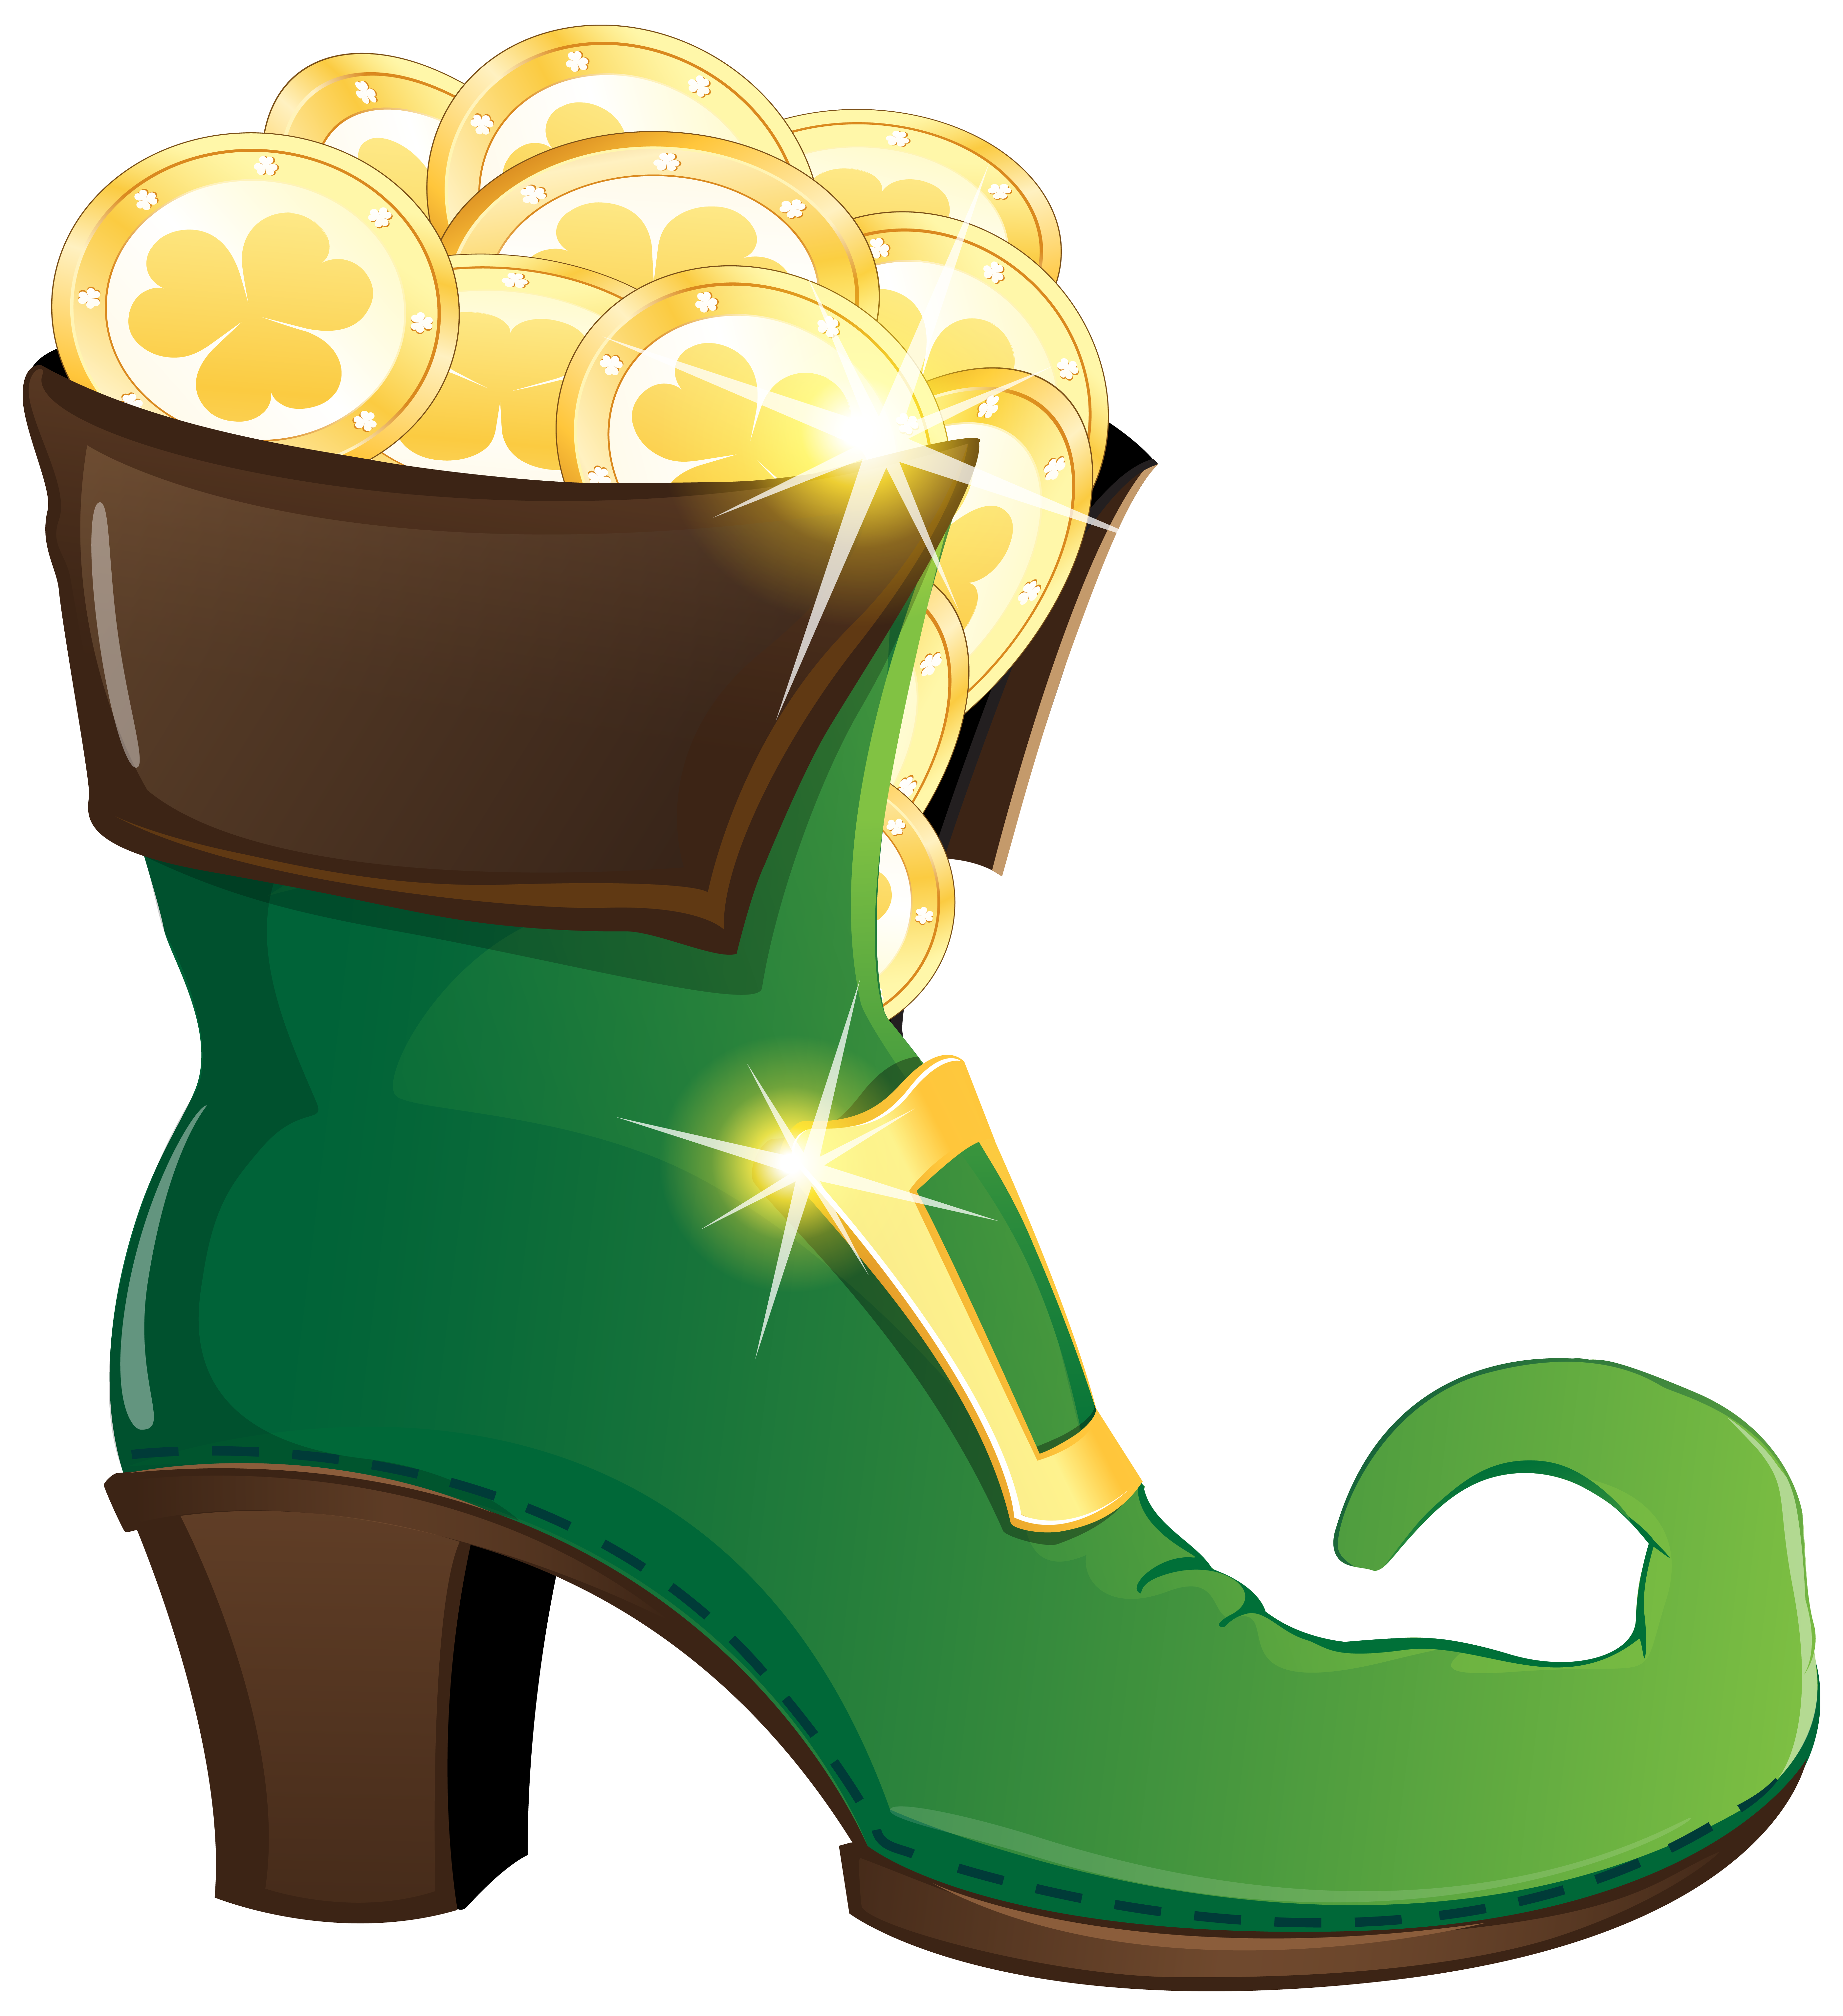 Coin clipart leprechaun gold. Shoe with coins png